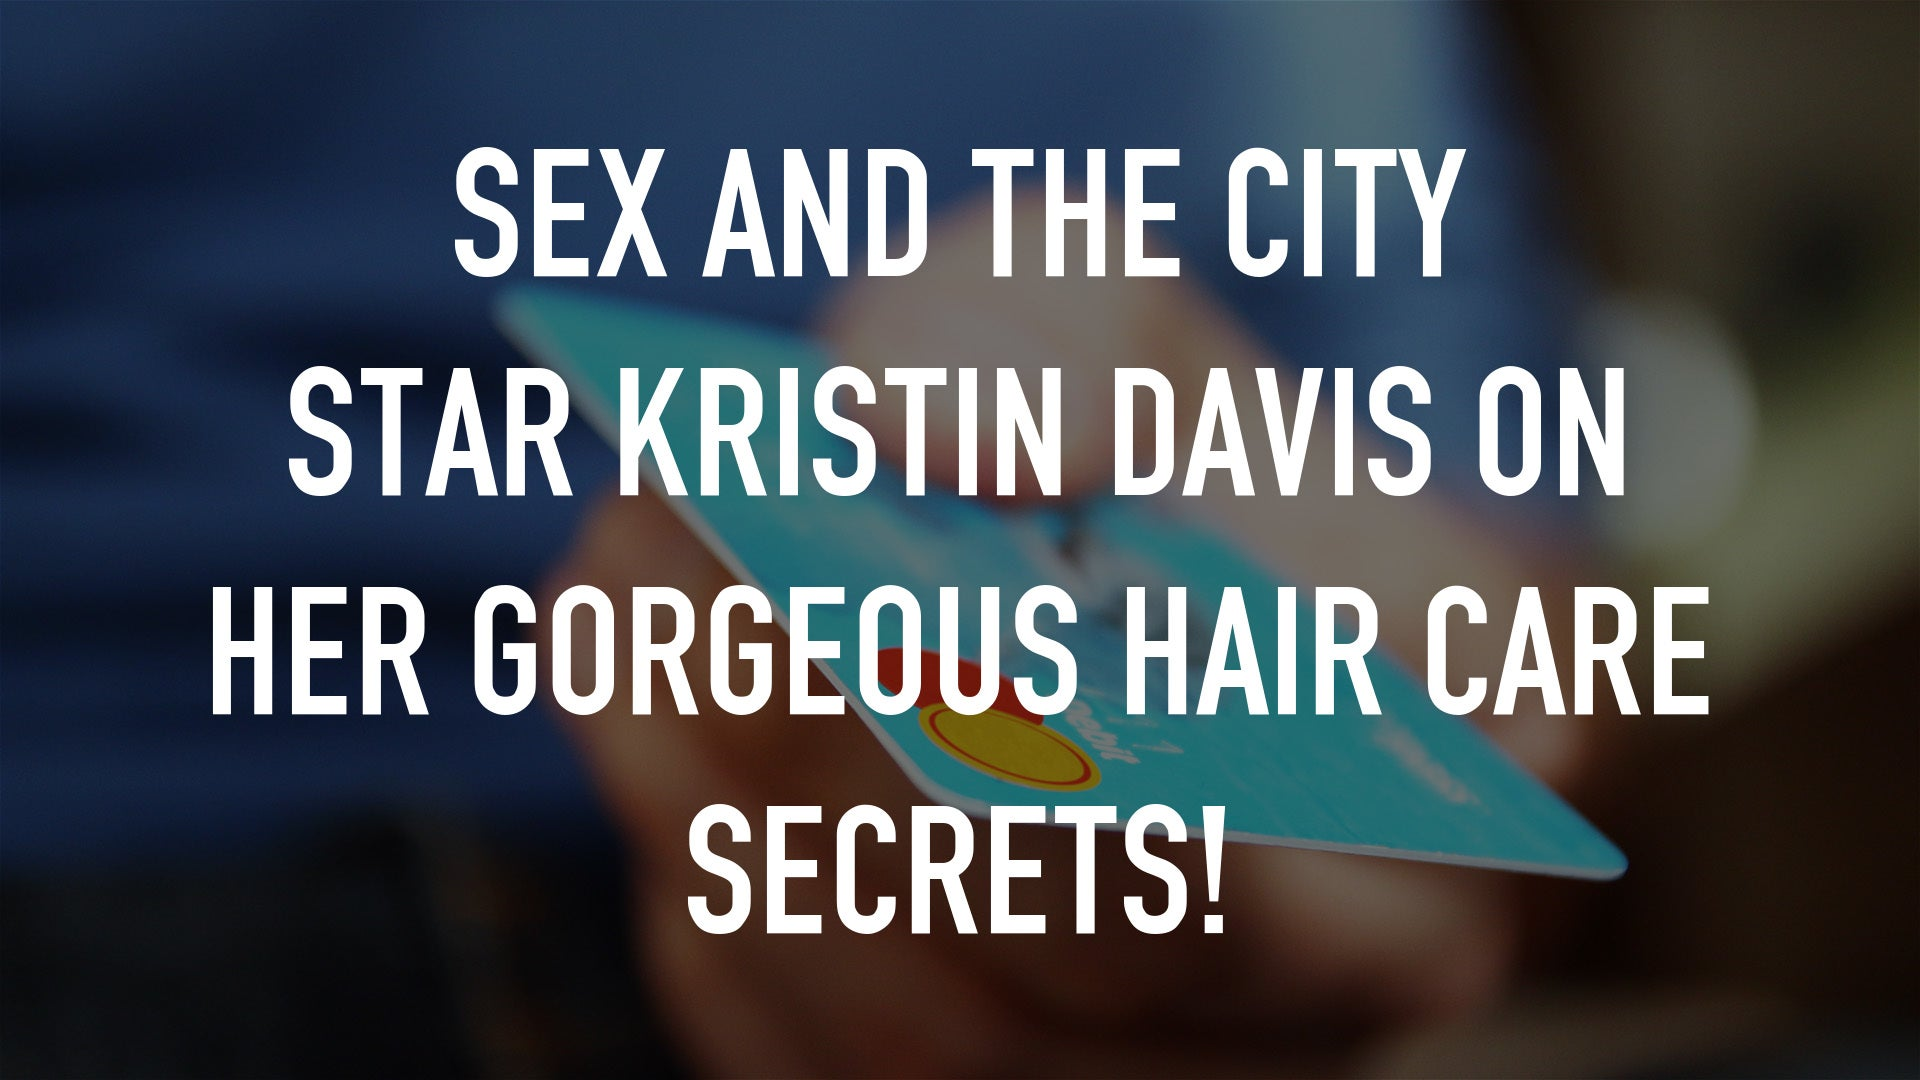 Sex and the City star Kristin Davis on Her Gorgeous Hair Care Secrets!